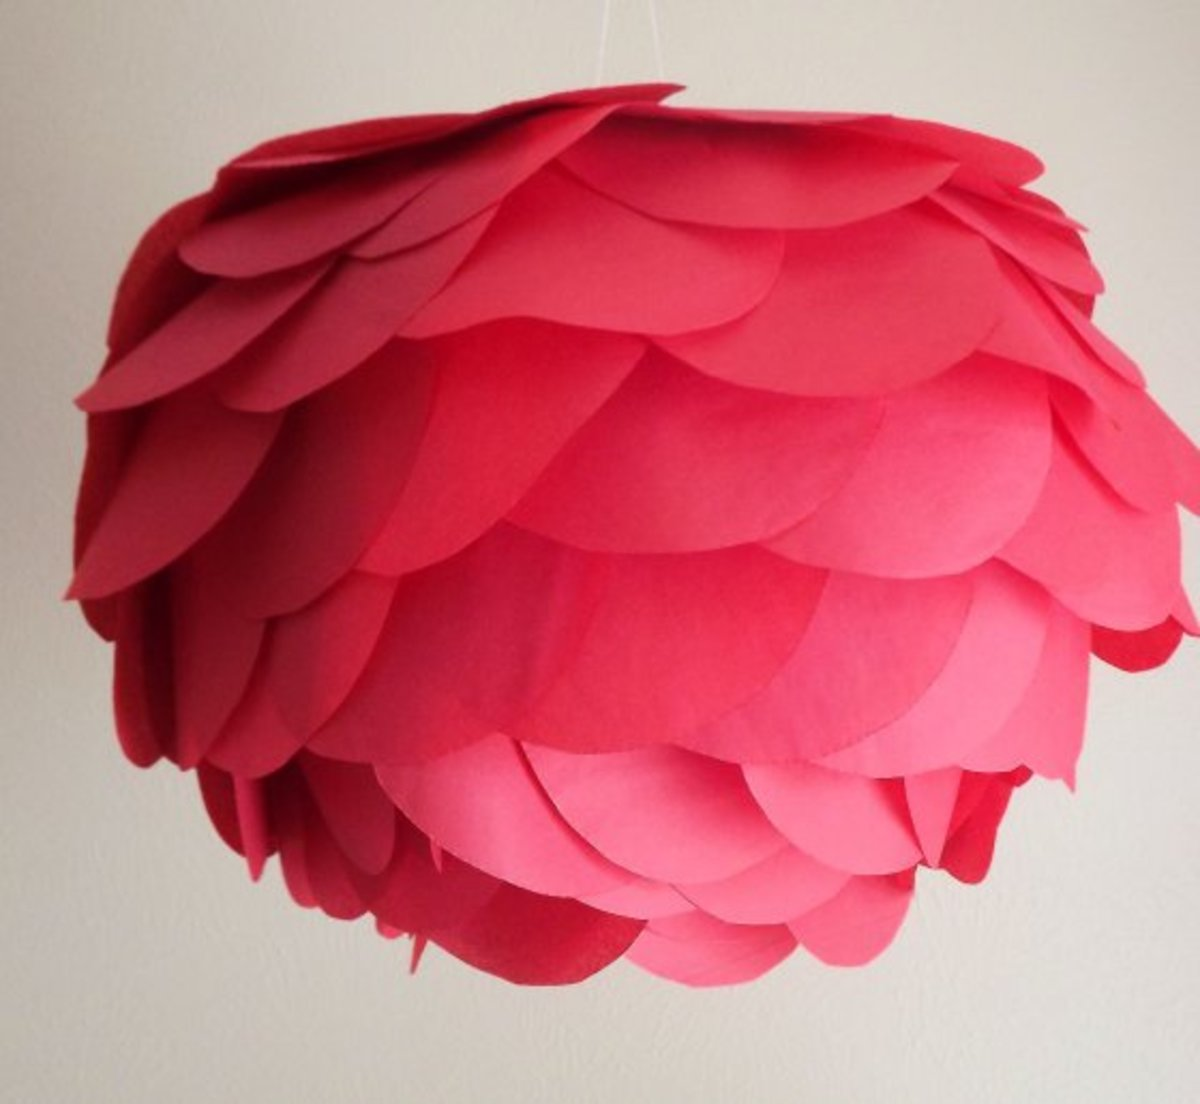 Cut the large tissue petals and glue or tape them onto a traditional round paper lantern.